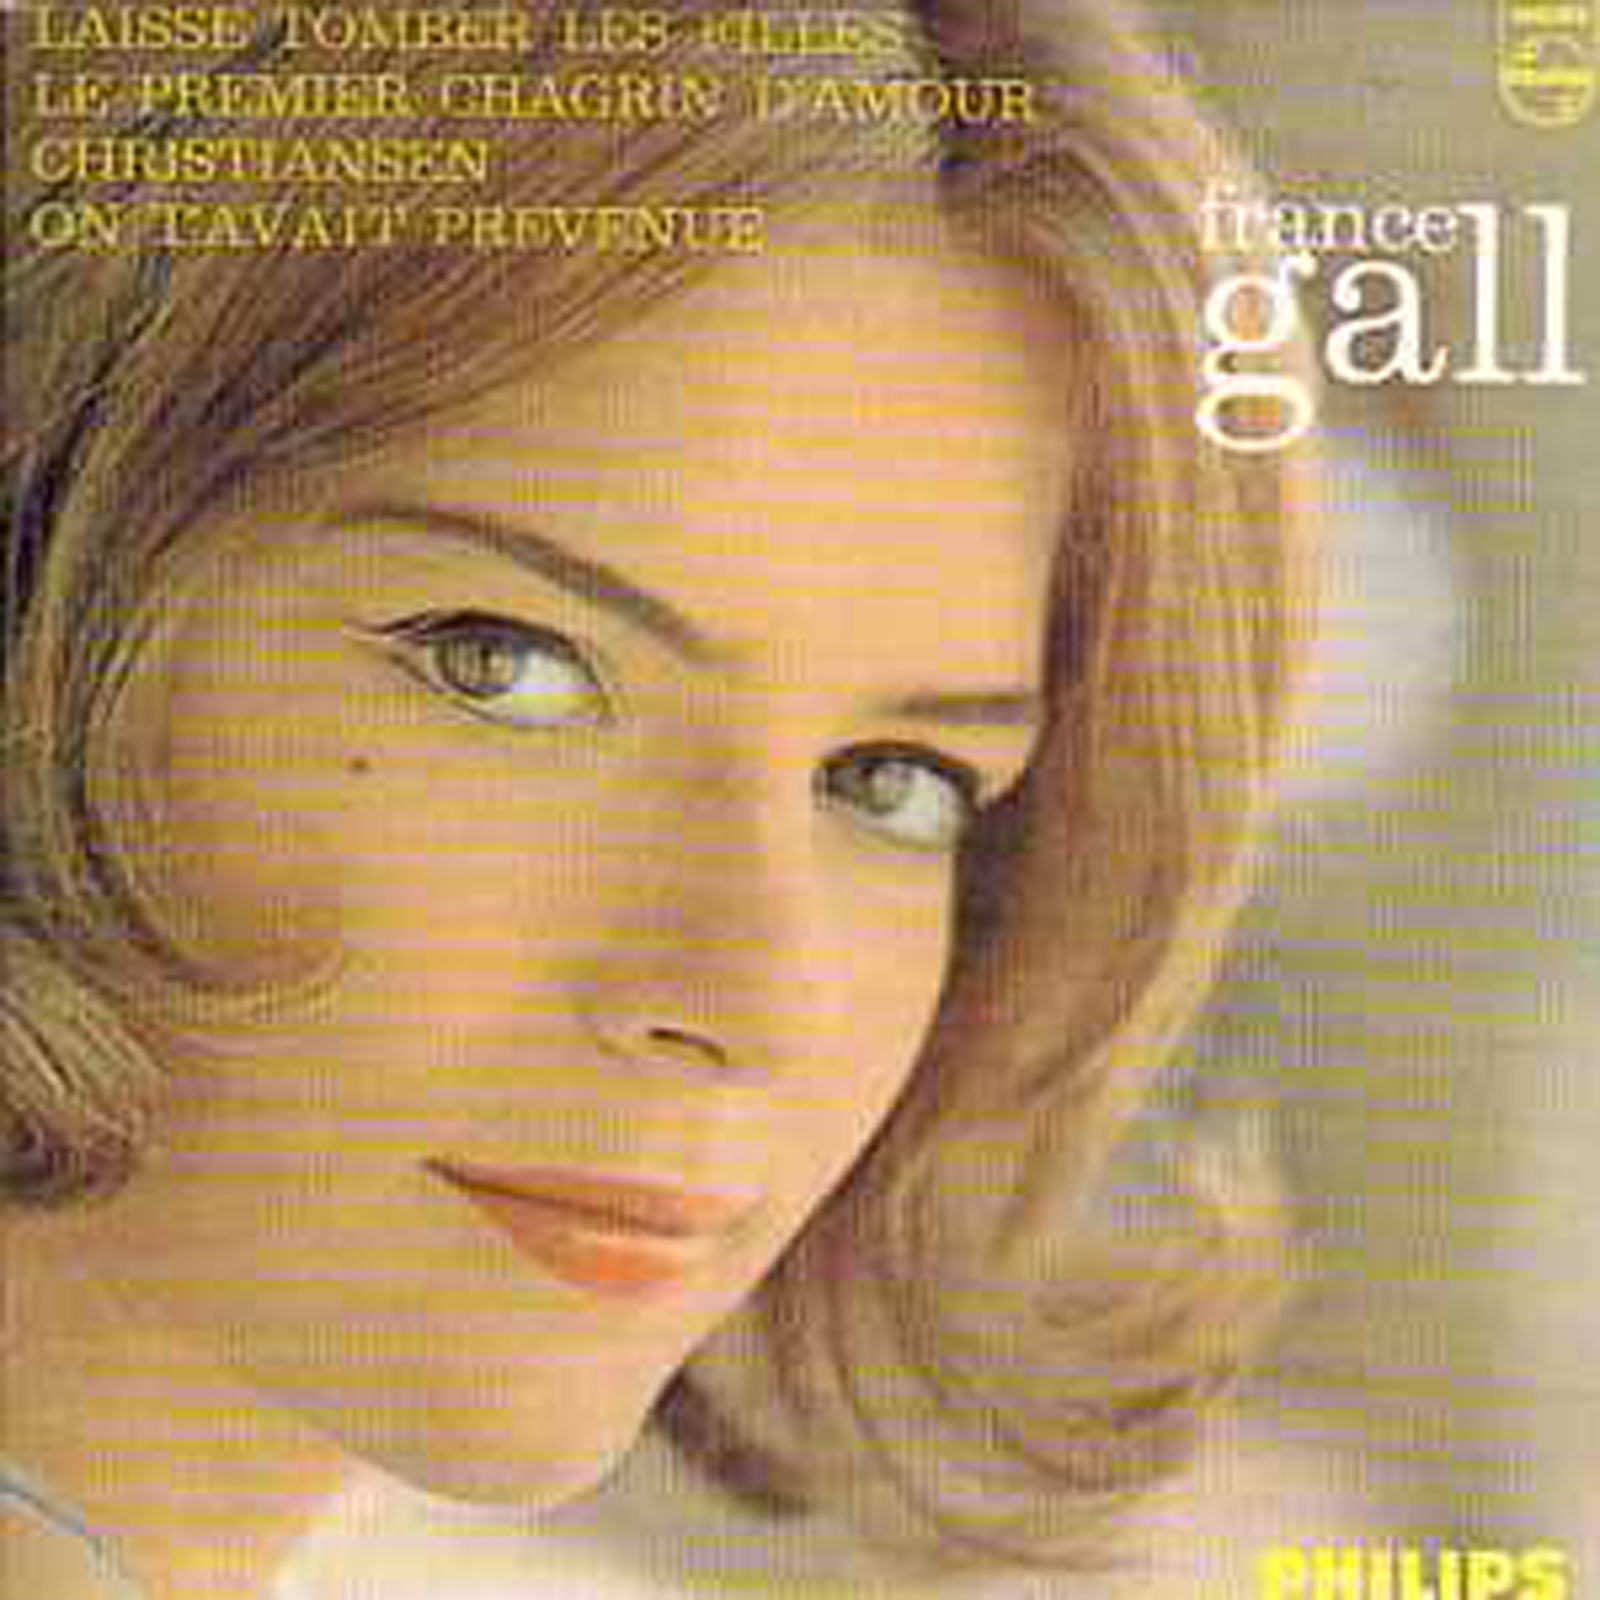 FRANCE GALL - Laisse tomber les filles 4-track CARD SLEEVE Limited Edition - CD single